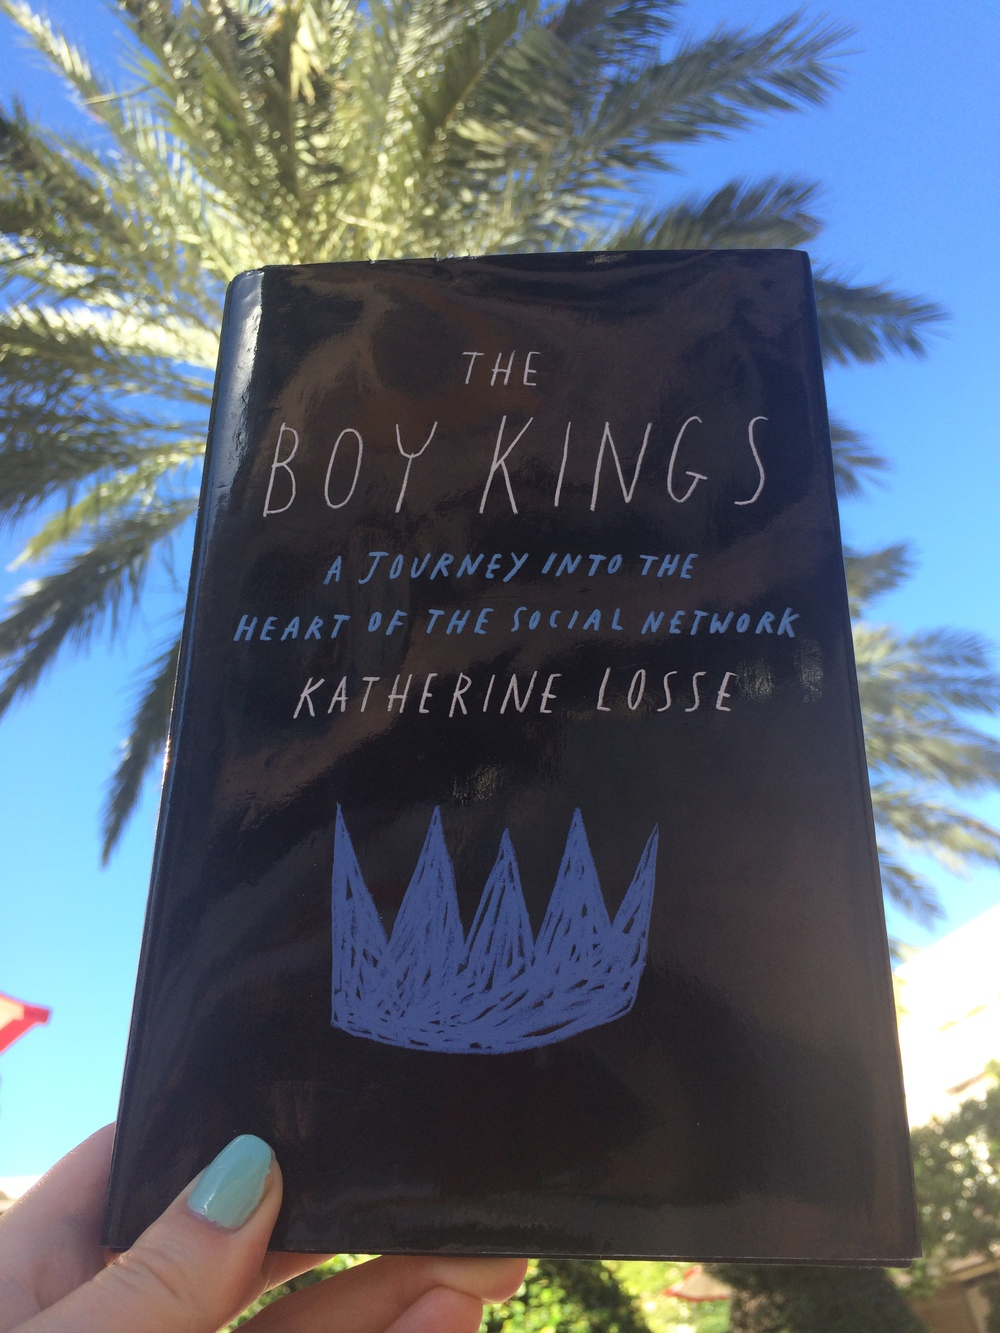 The Boy Kings (Simon & Schuster)